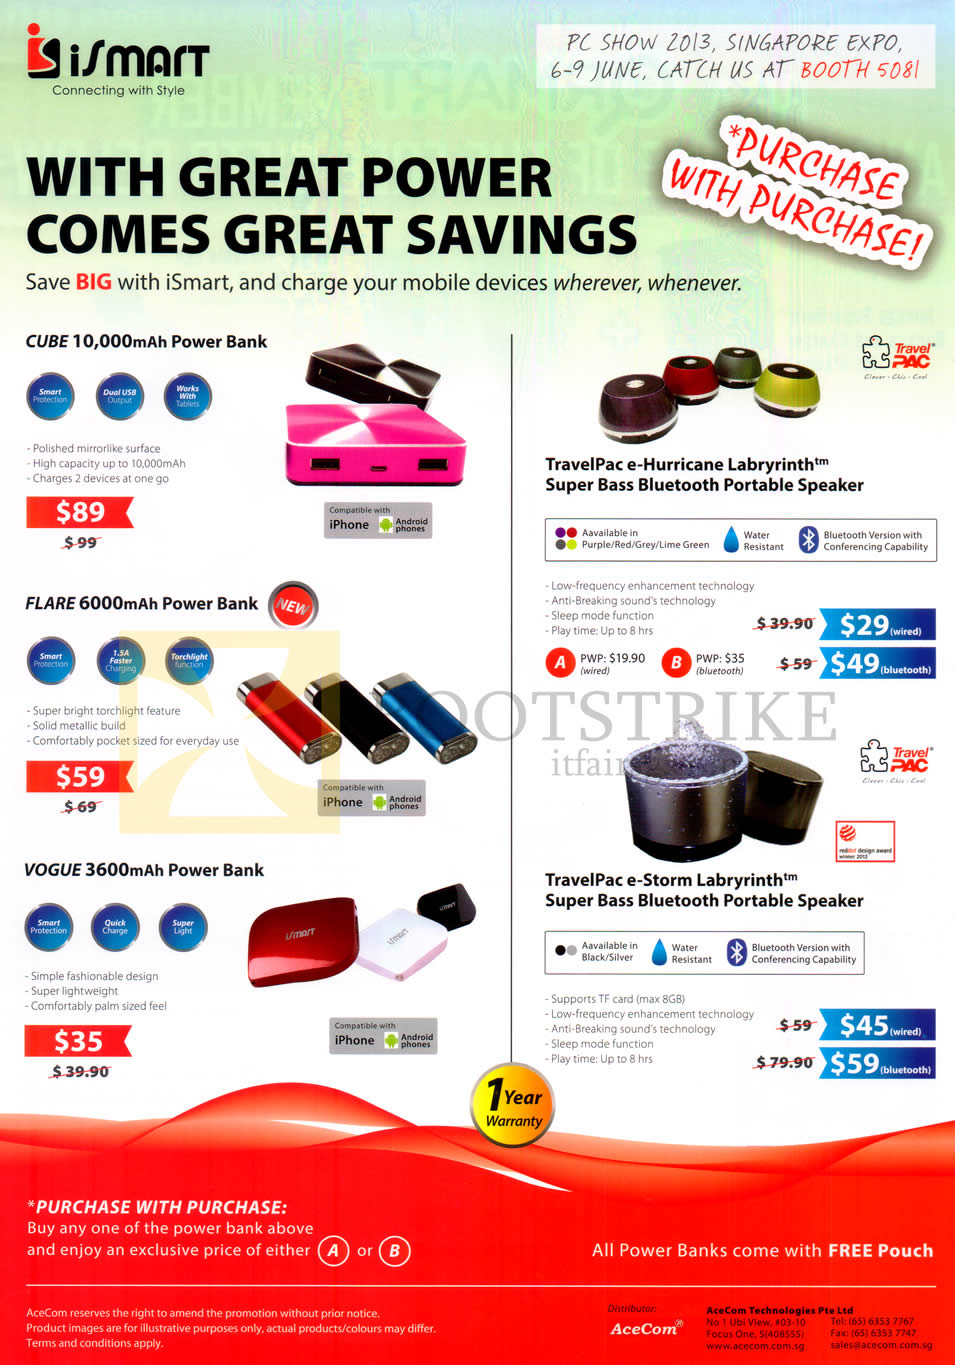 PC SHOW 2013 price list image brochure of AceCom ISmart Portable Chargers Cube, Flare, Vogue, Speakers TravelPac